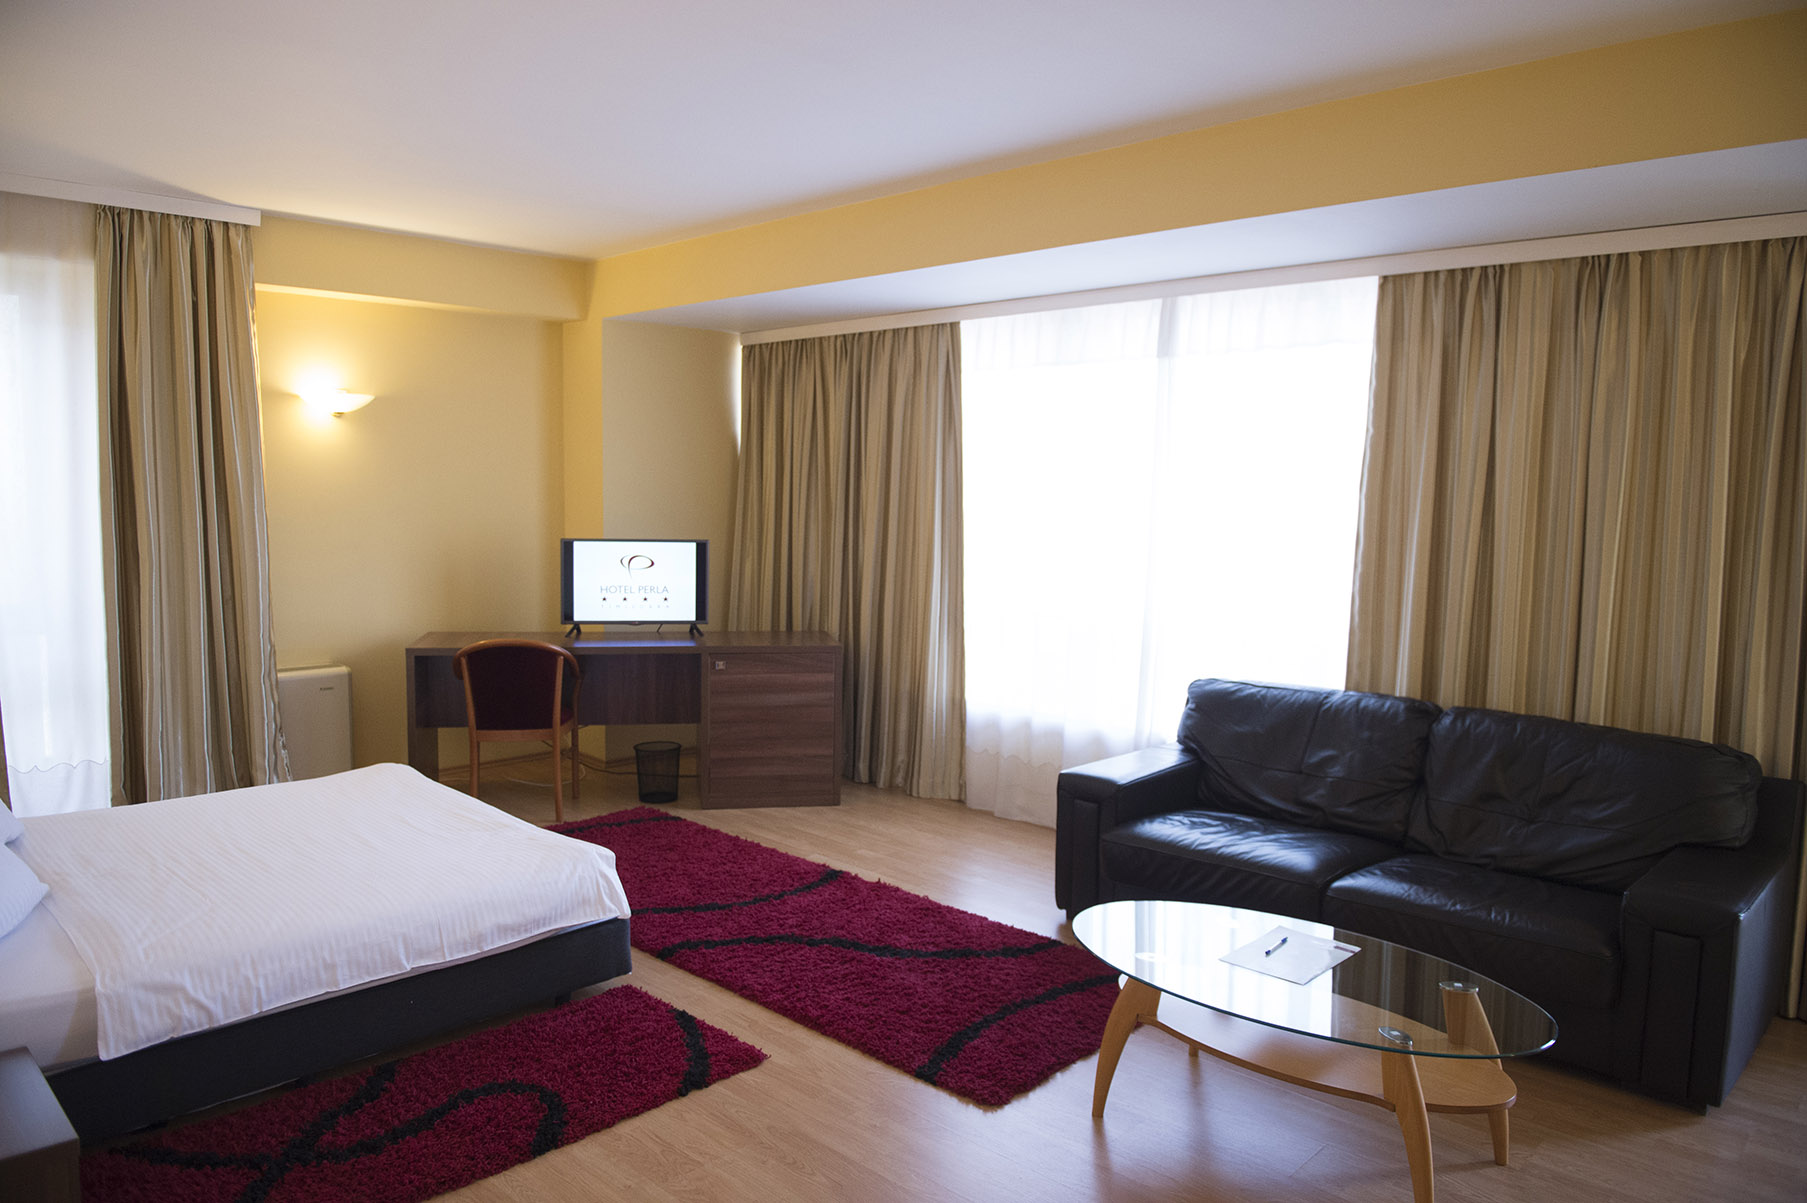 Apartament Family - Perla 4*